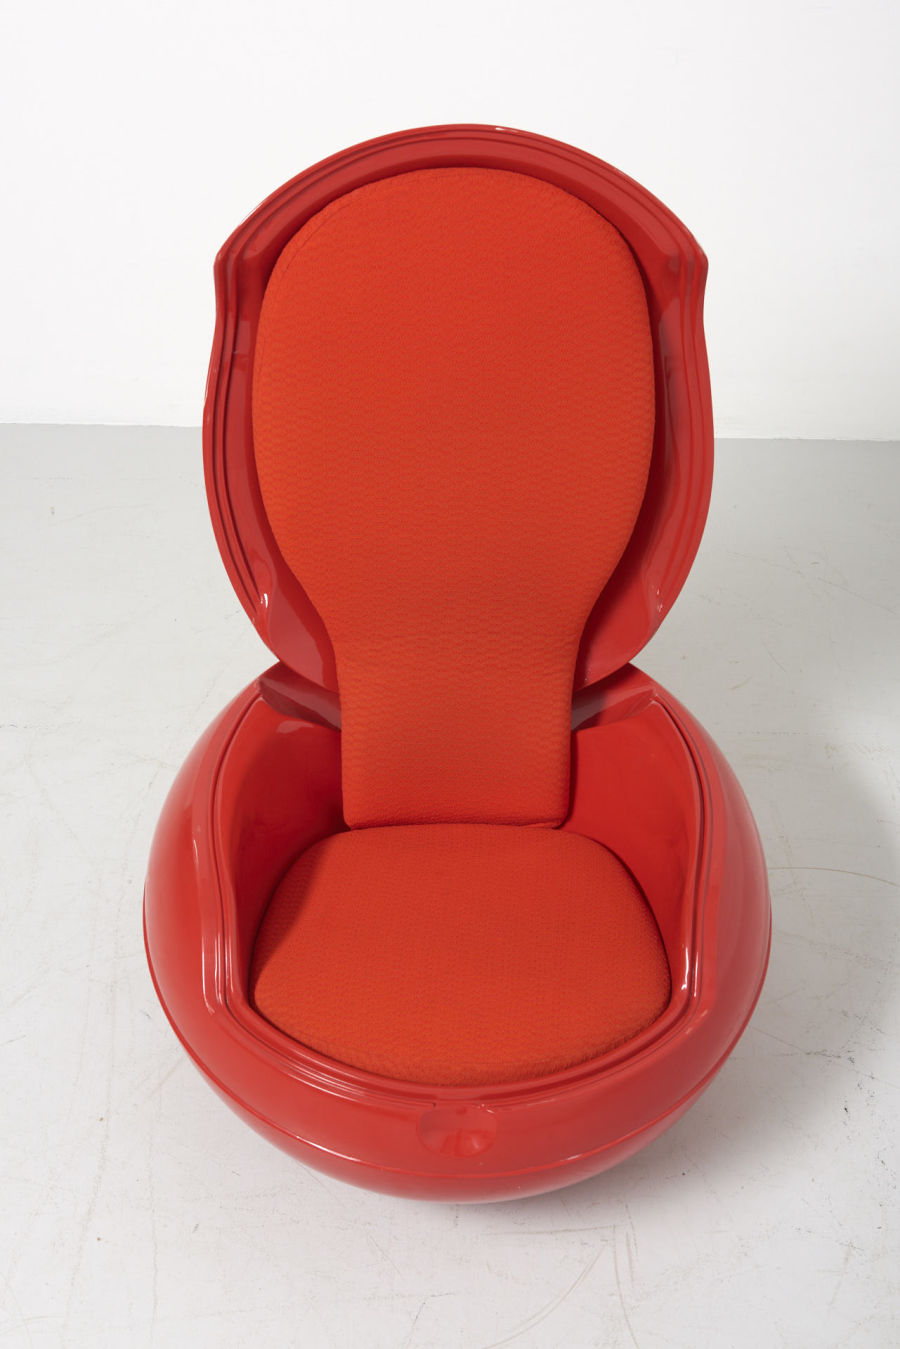 modestfurniture-vintage-2723-peter-ghyczy-garden-egg-chair-red03